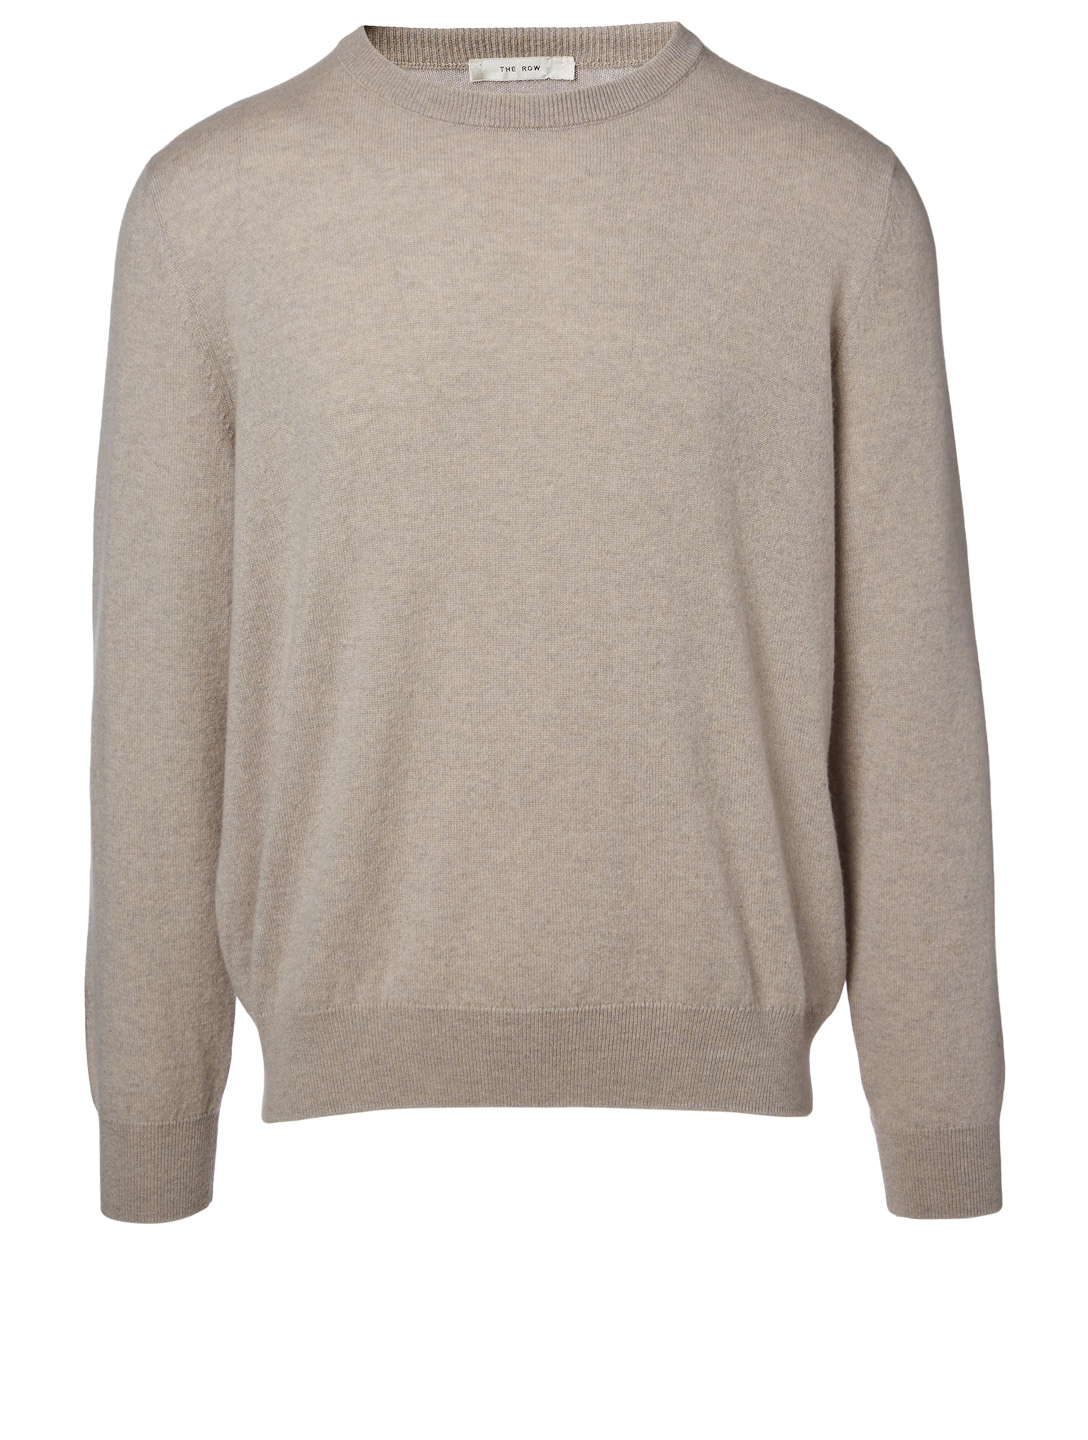 THE ROW Benji Cashmere Sweater Men's Neutral